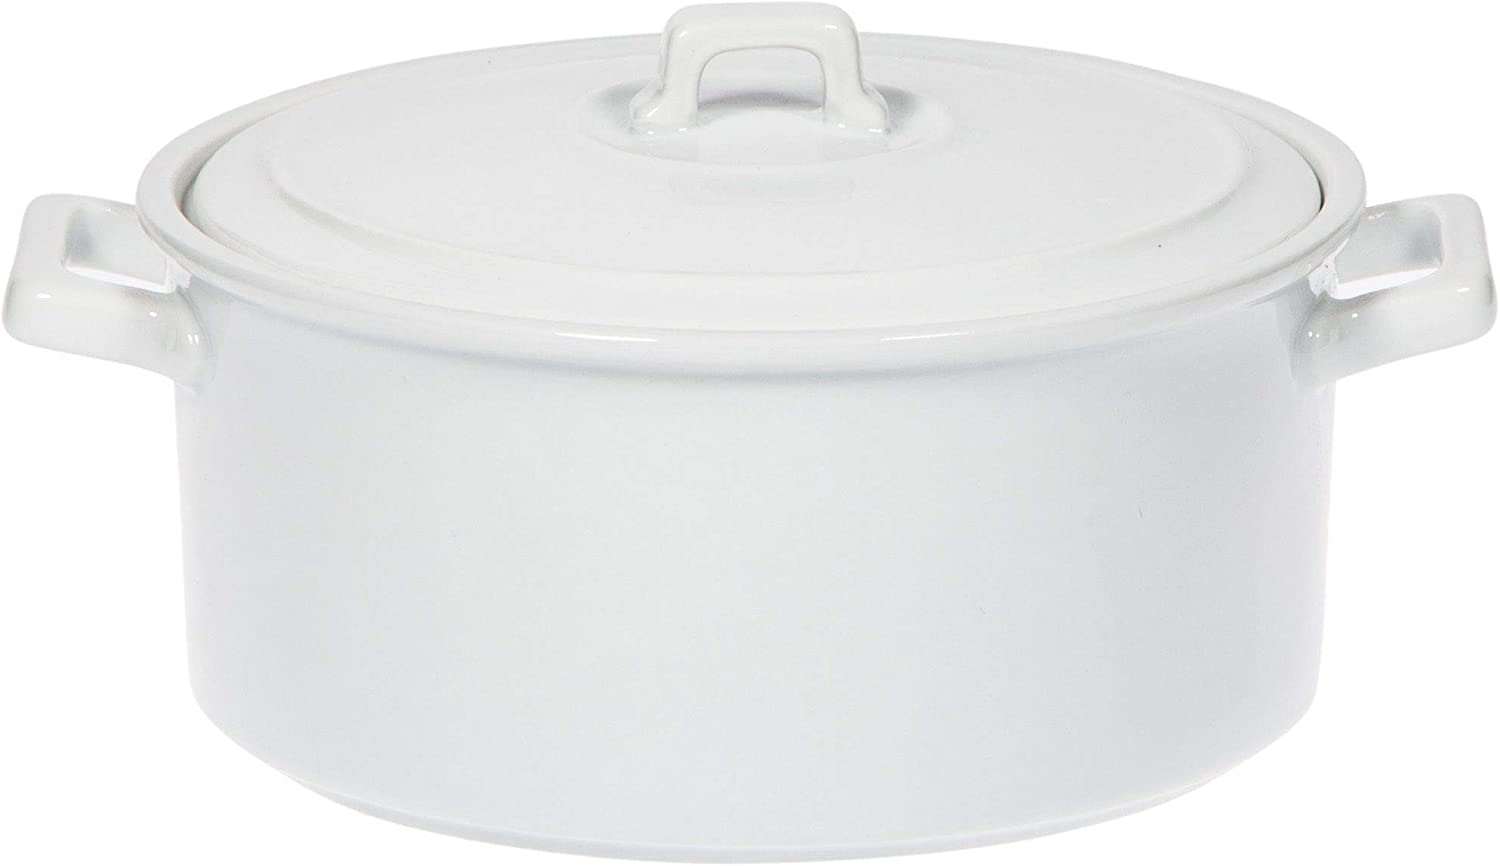 Home Essentials 15151 Covered Casserole with Handle, 1 Quart, 9-inch Length